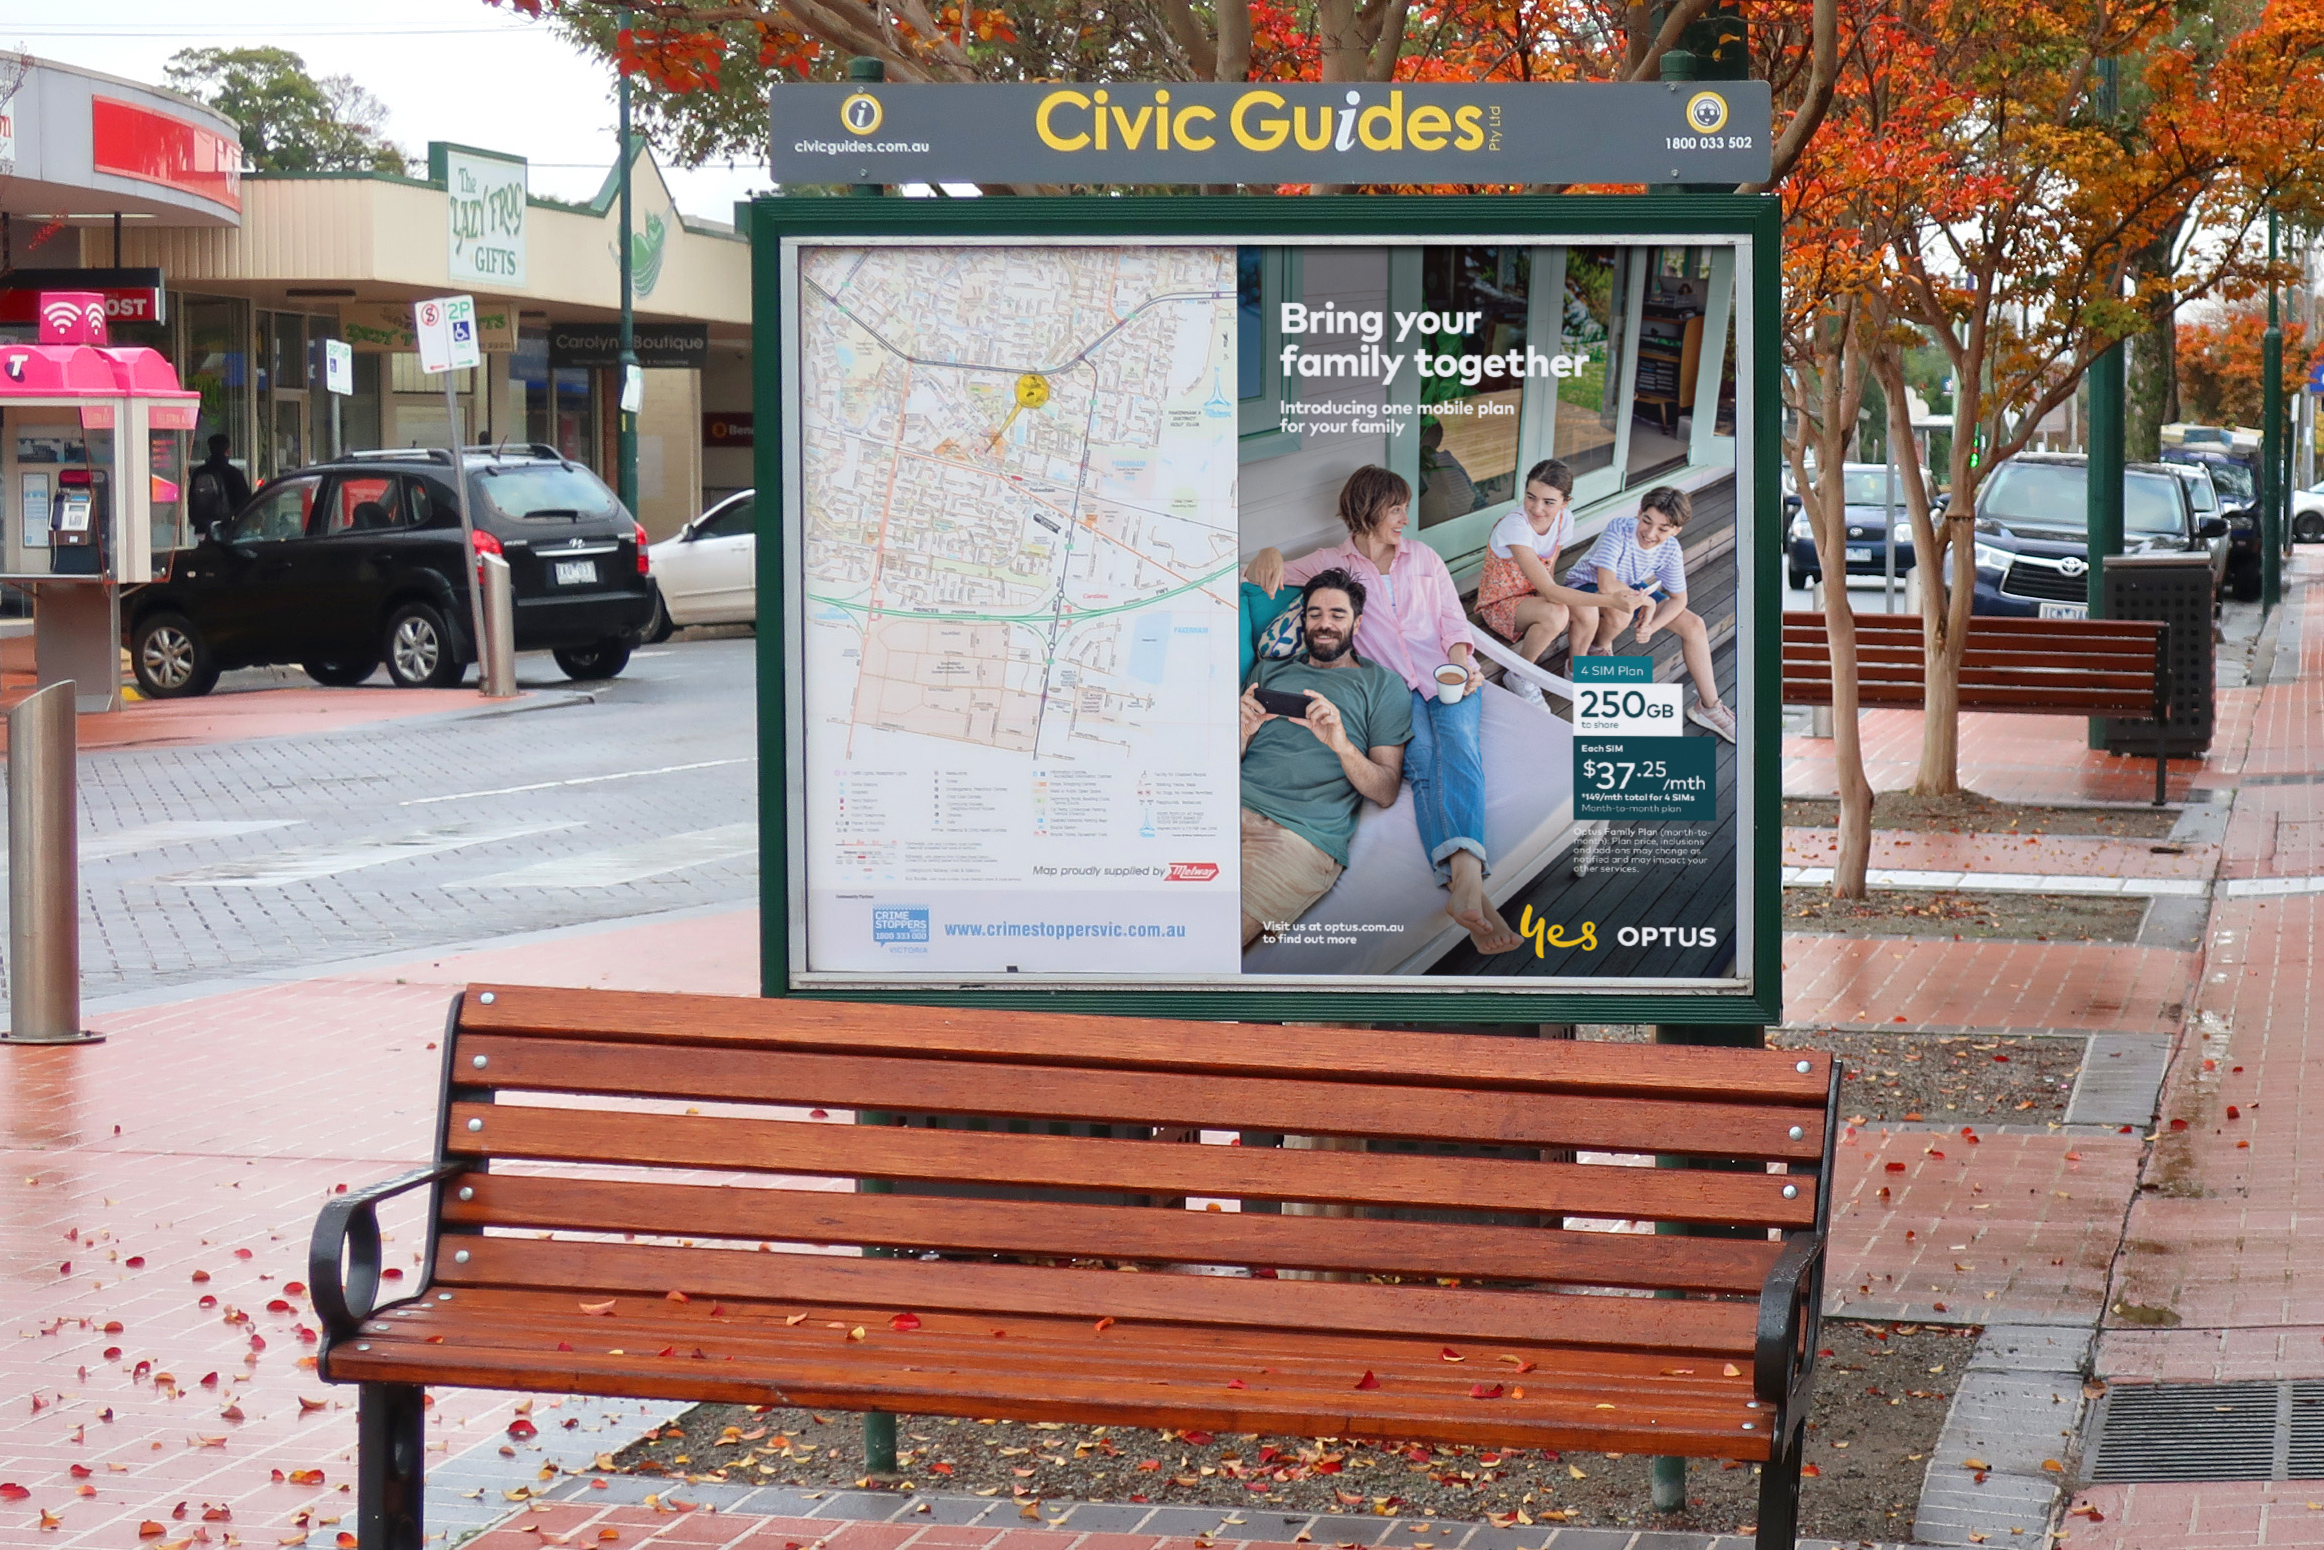 Civic Guides talk to the Australian community